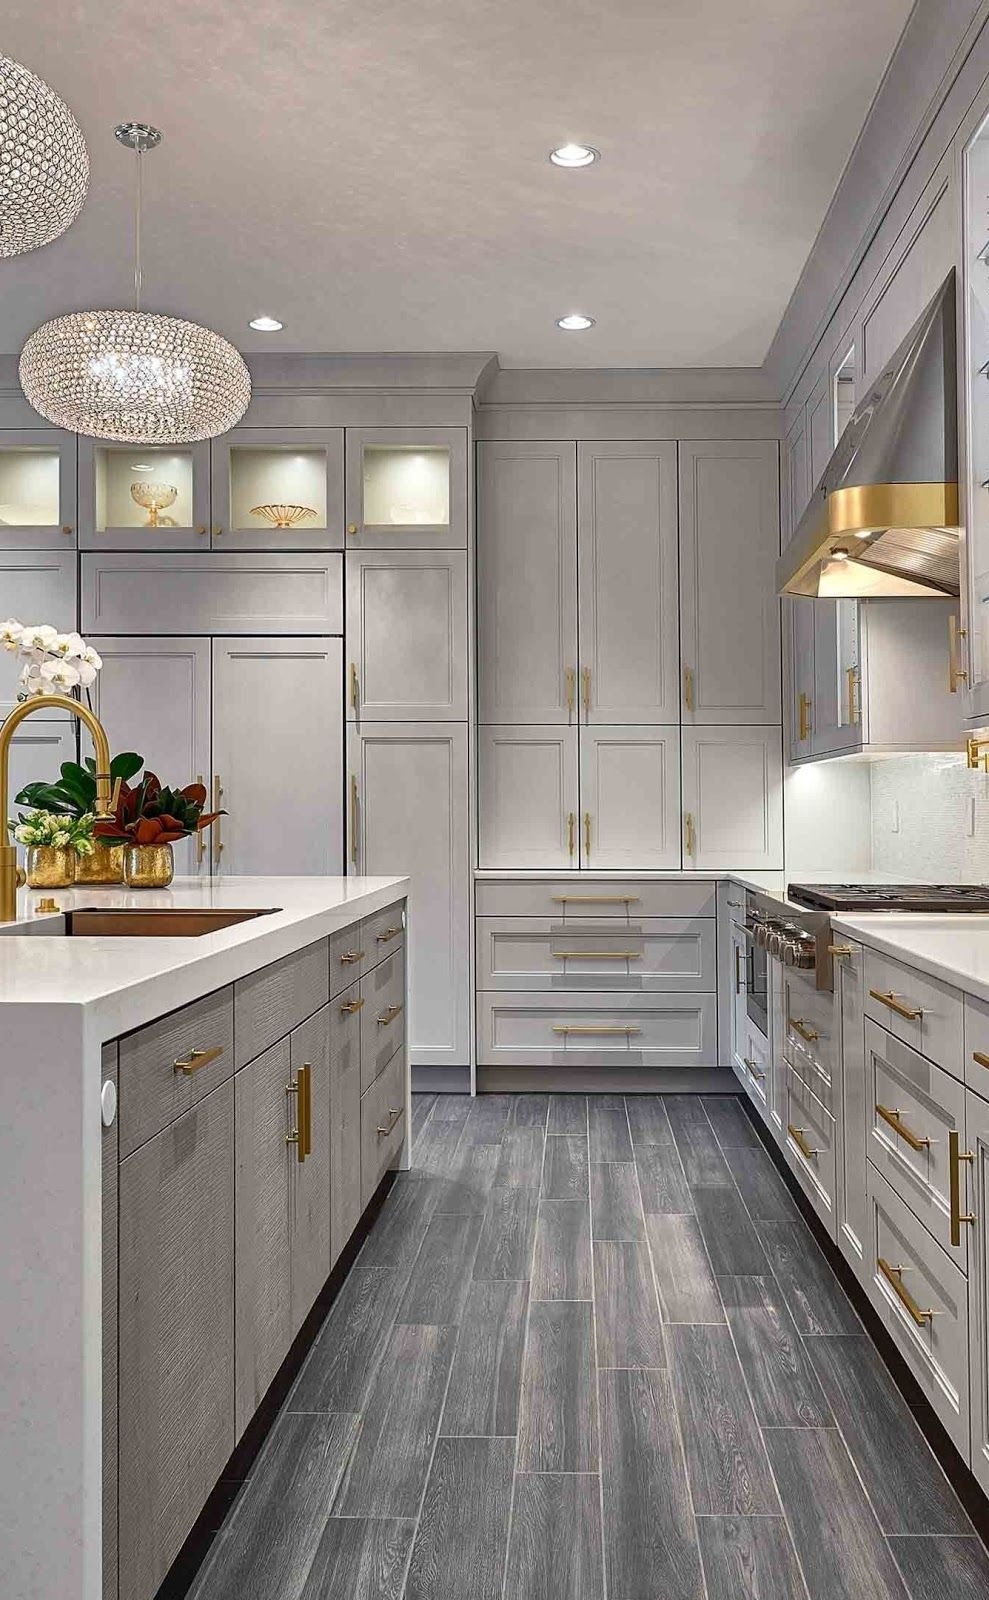 8 Pantry Design Ideas for Your New Kitchen | The Kitchen ...